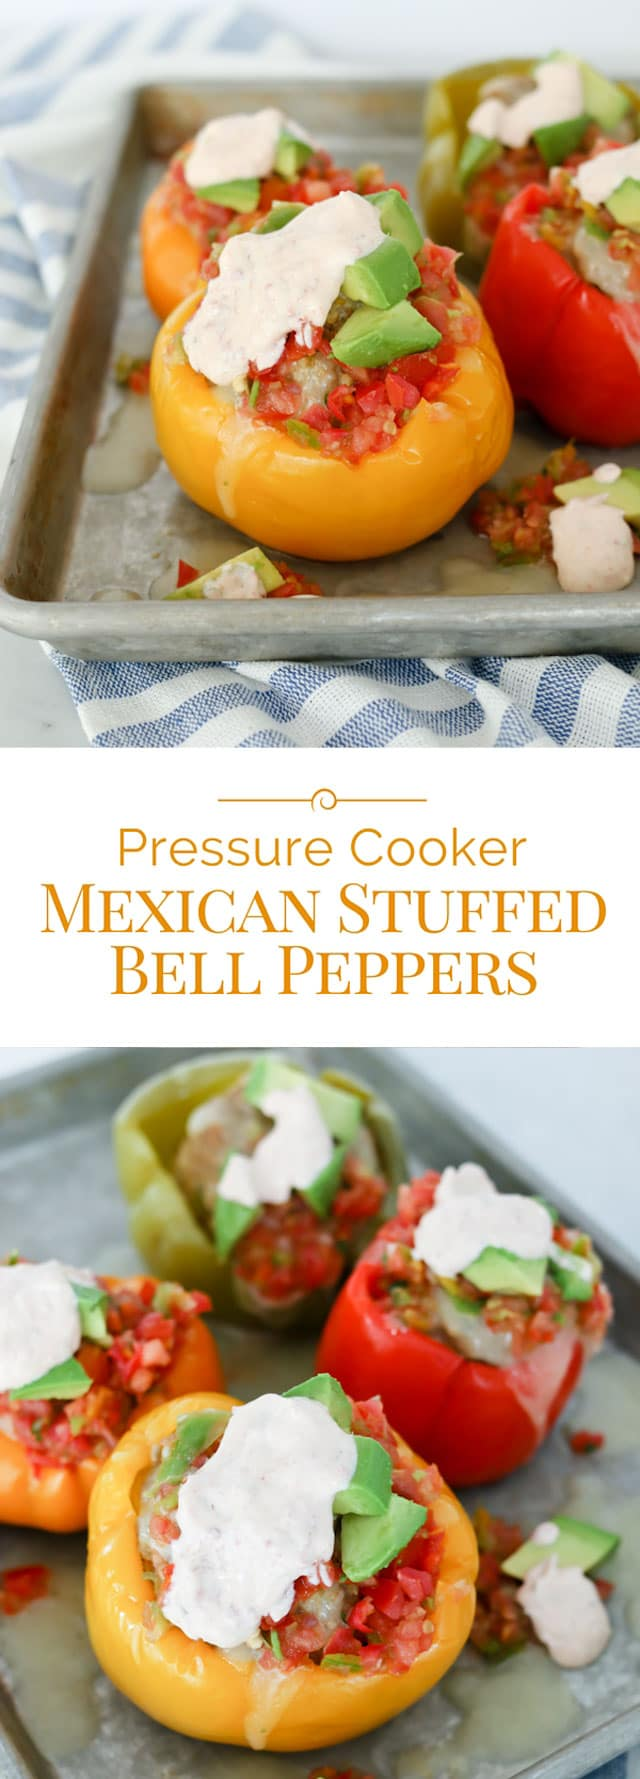 Mexican stuffed bell peppers made in a pressure cooker come out perfectly tender every time. This is the best stuffed peppers recipe, because there's no precooking required! Instant Pot recipe for Mexican Stuffed Bell Peppers with Chipotle Lime Sauce! #pressurecooking #instantpot #Mexicanrecipes #stuffedpeppers via @PressureCook2da